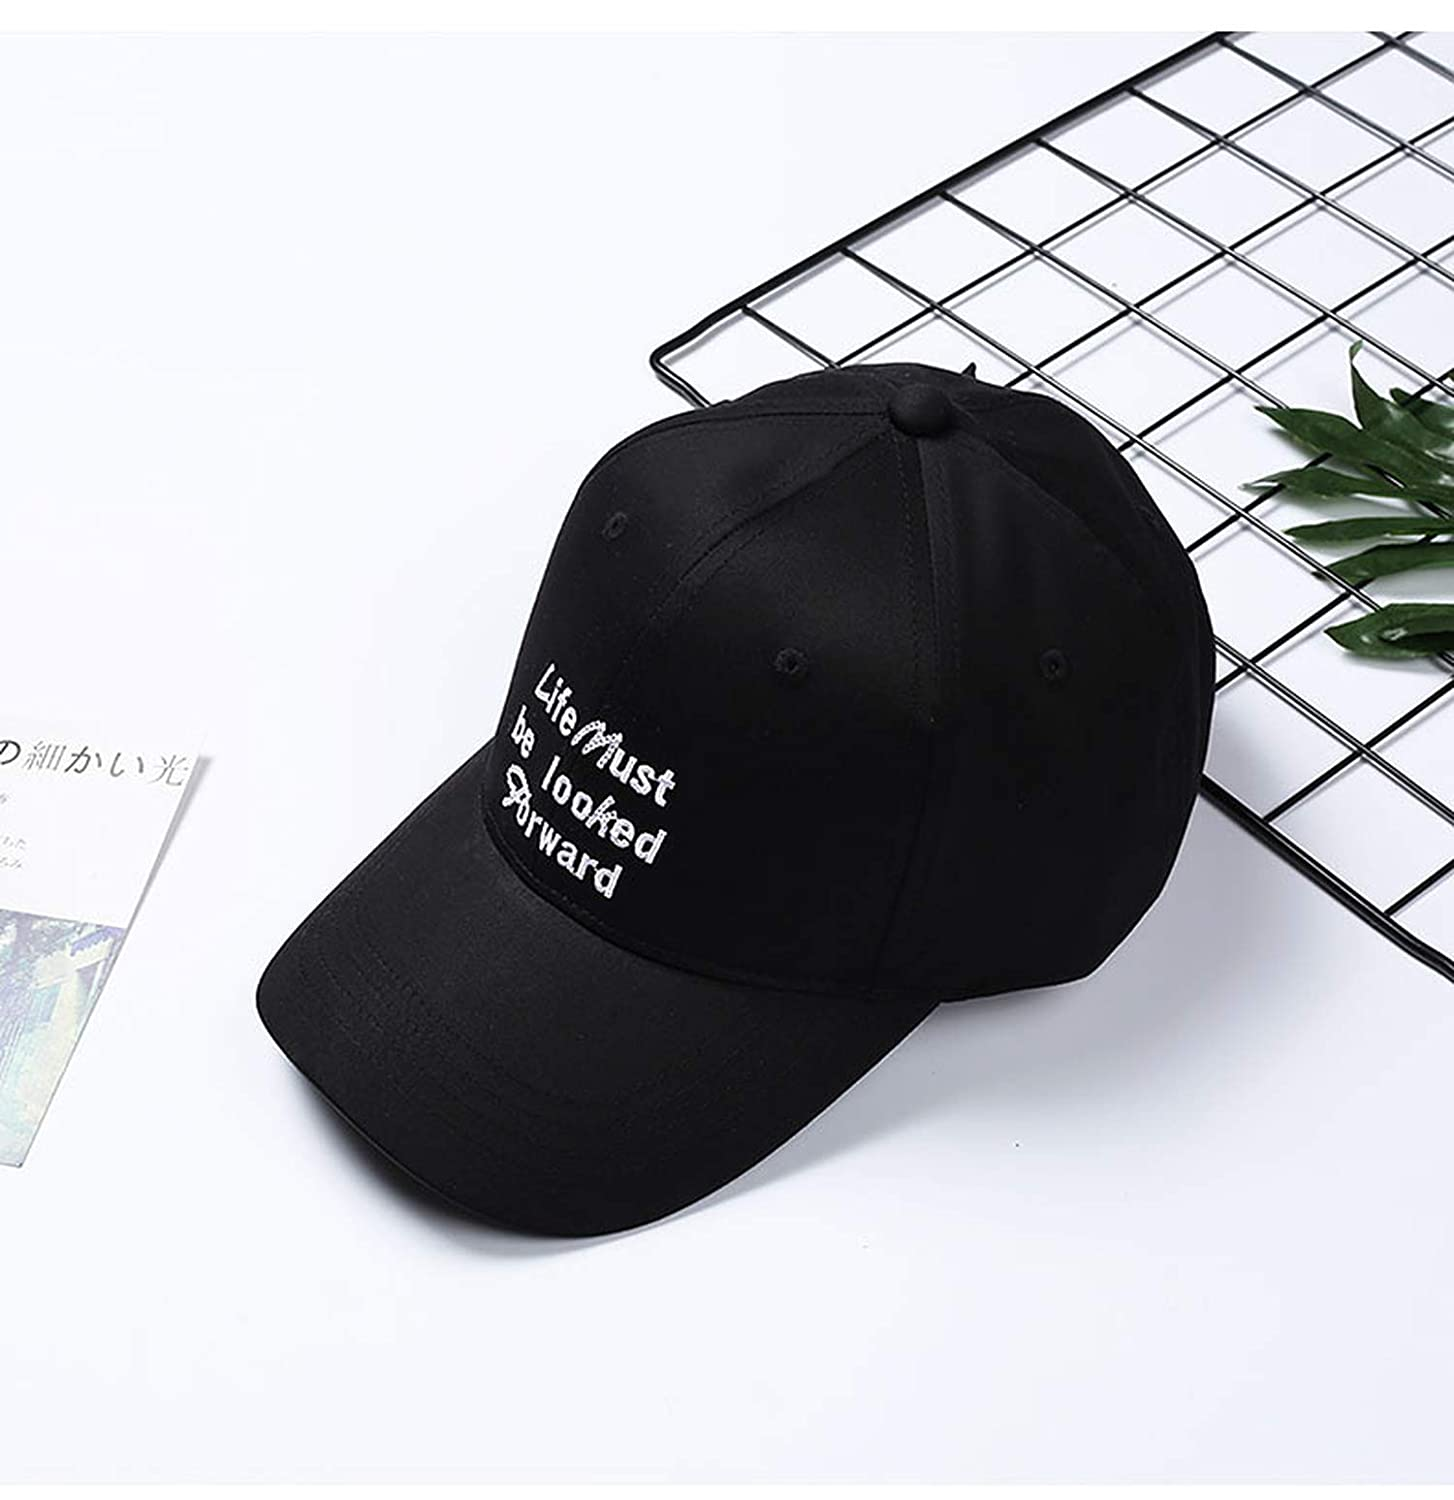 2019 Spring Womens Fashion Baseball Caps Youth Girls Sun Hats with Wide Brim Outdoor Solid Color Casual Caps